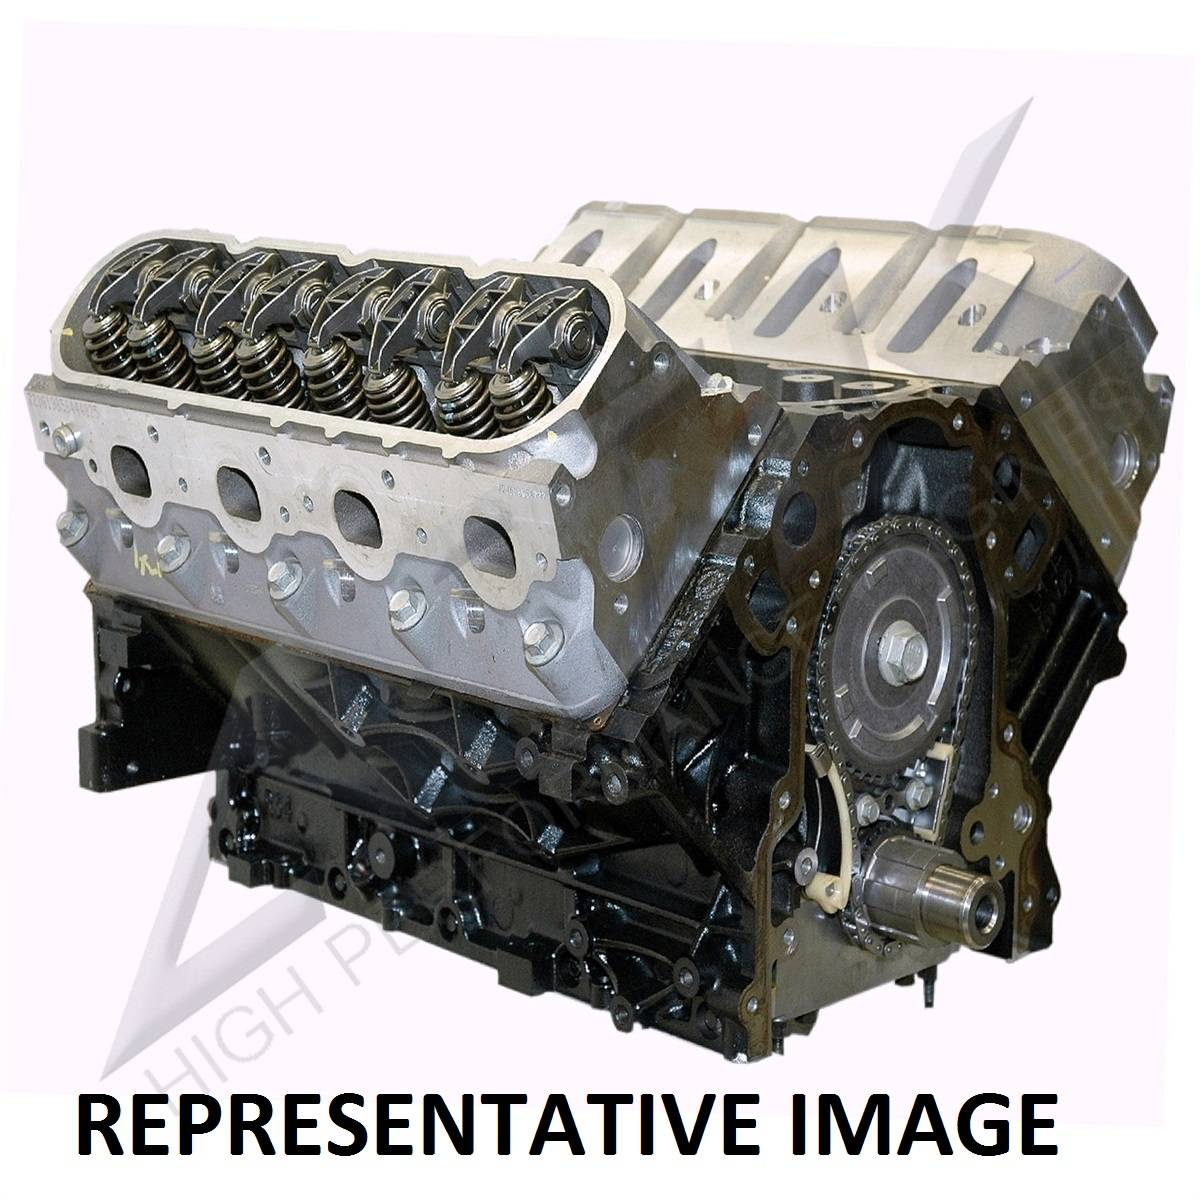 ATK HPE-HP93 Chevy LQ4 6 0L Base Engine 460HP ATK Engines